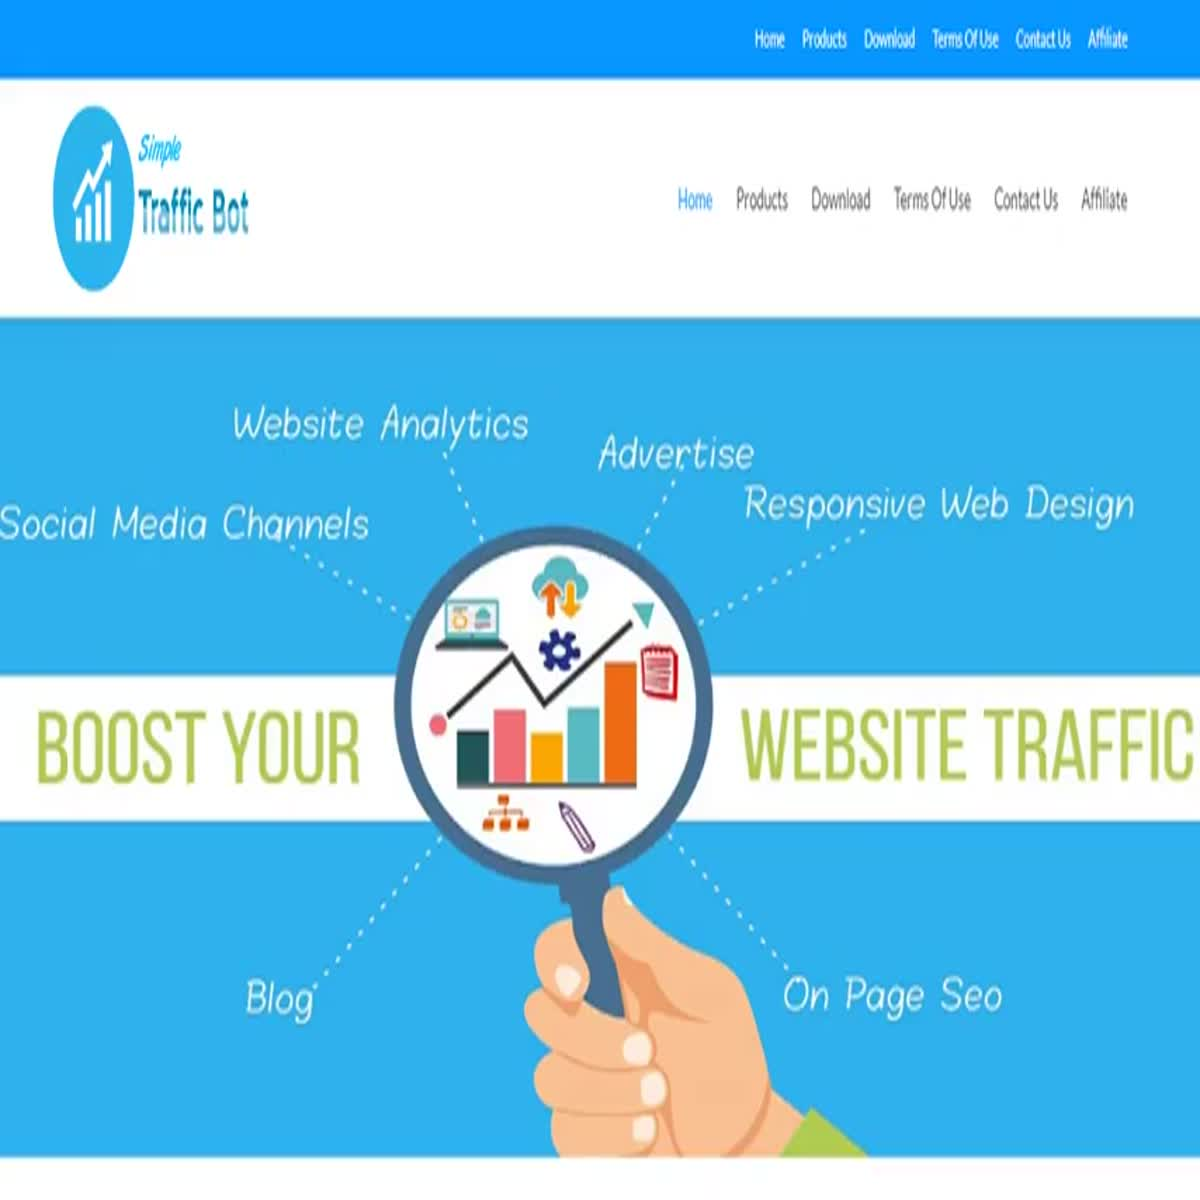 Simple Traffic Bot - Generate unlimited traffic for your website